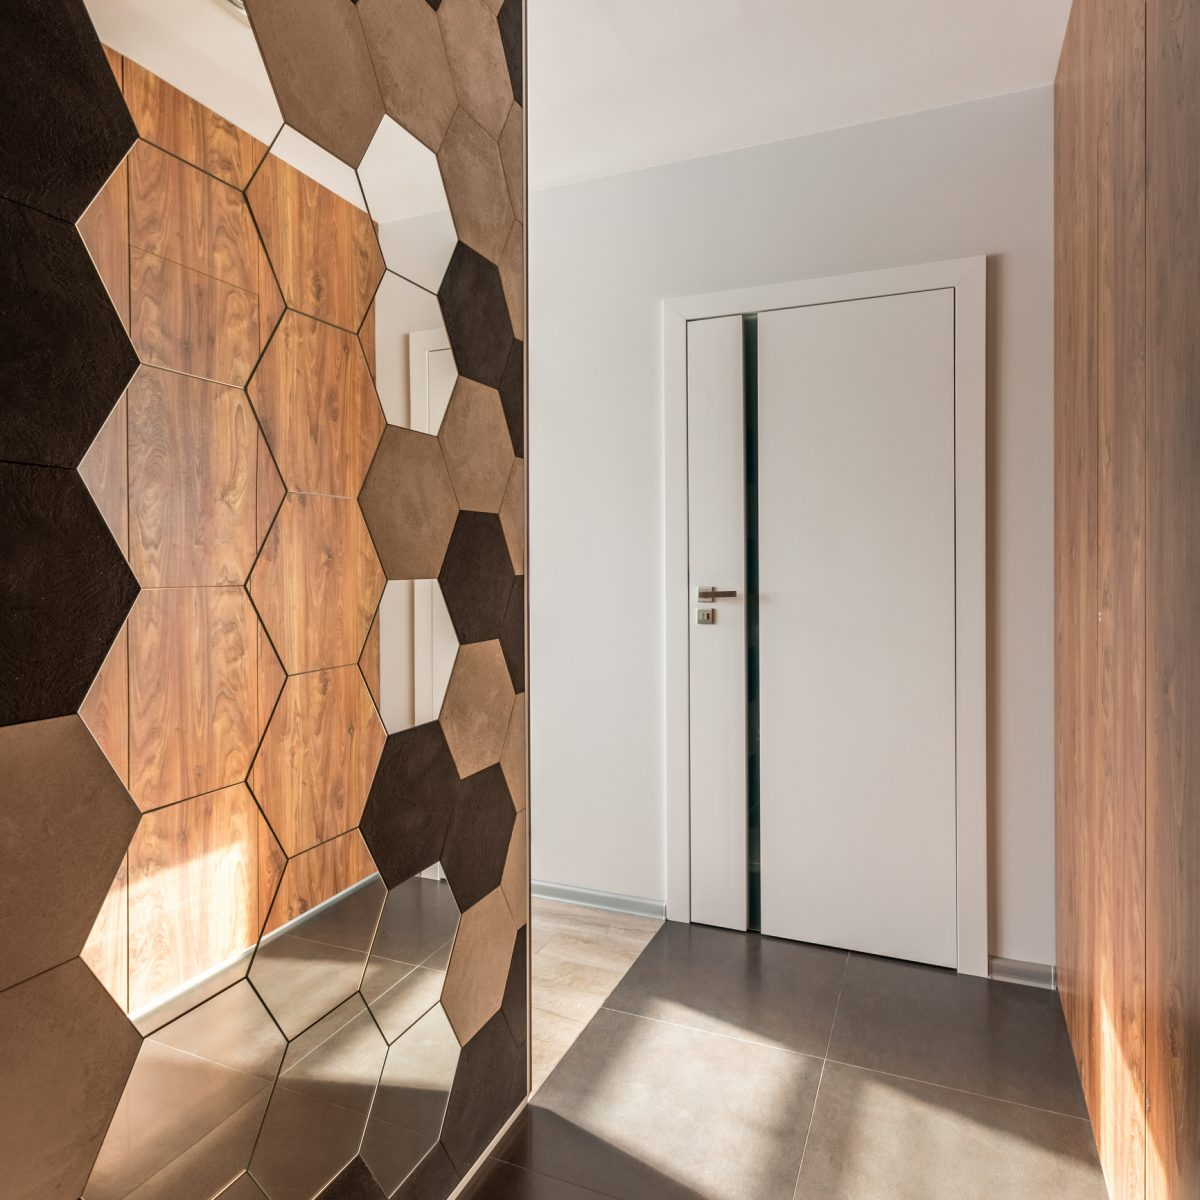 This honeycomb mirrored wall hanging makes the space look larger.